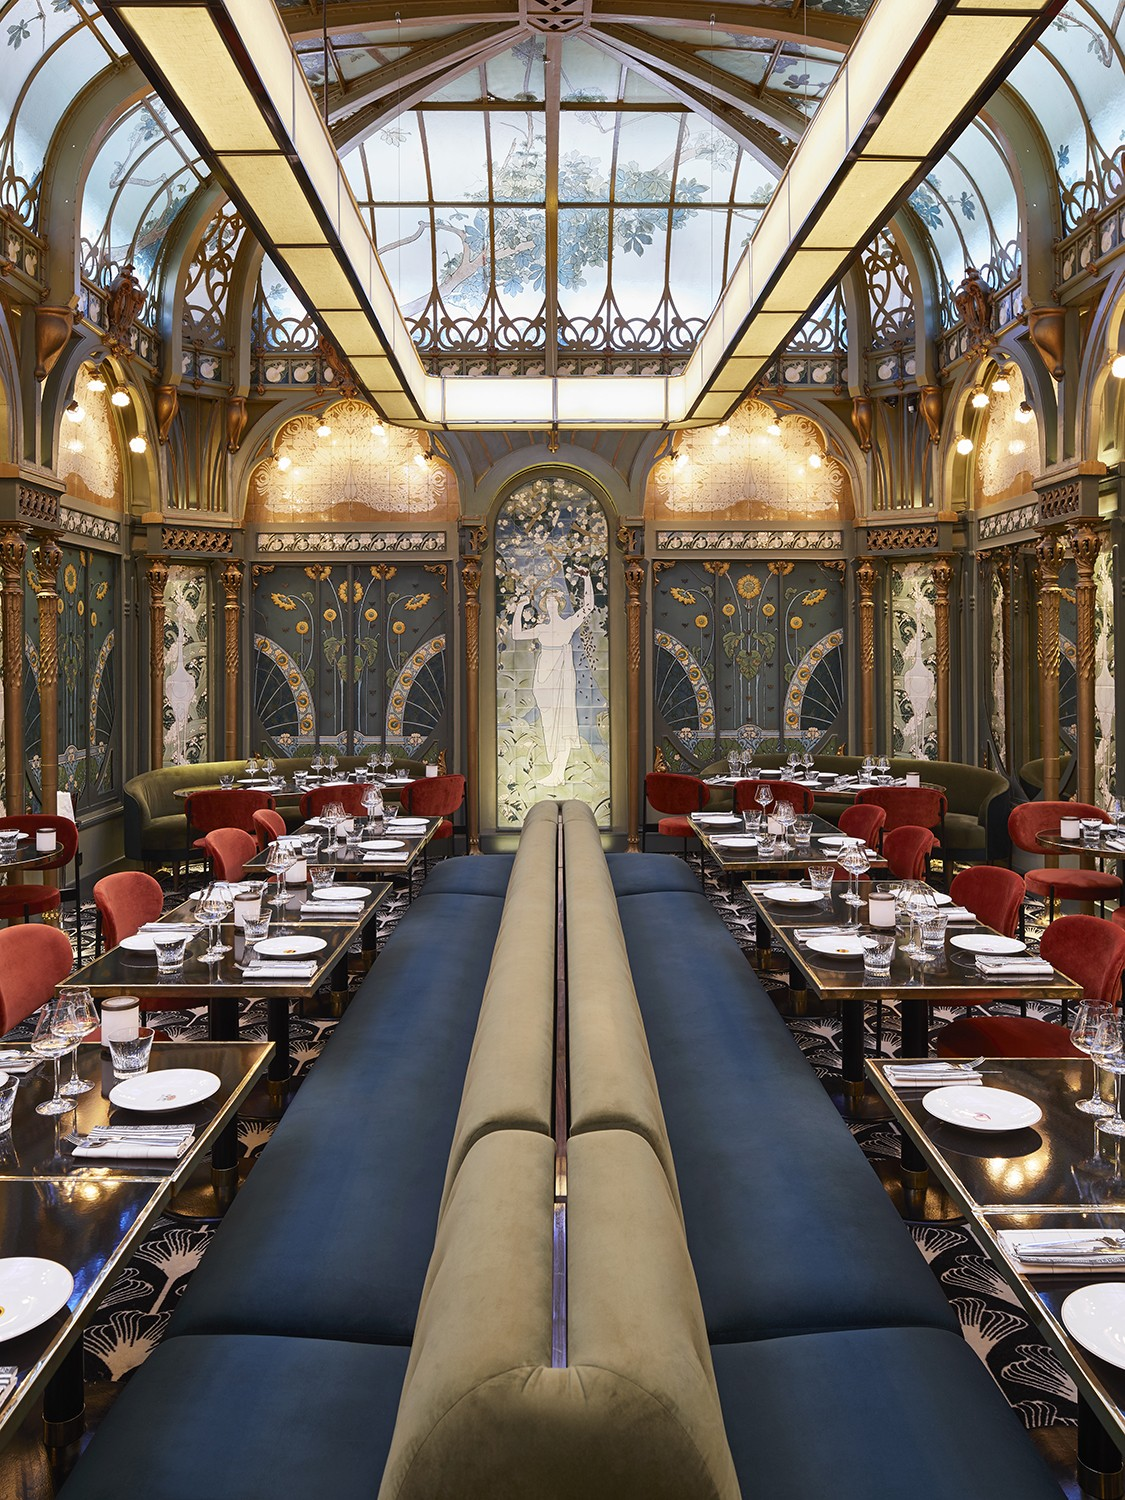 interior design Beefbar Paris, the New Jewel of Interior Design by Humbert & Poyet paris restaurant maison object 20194